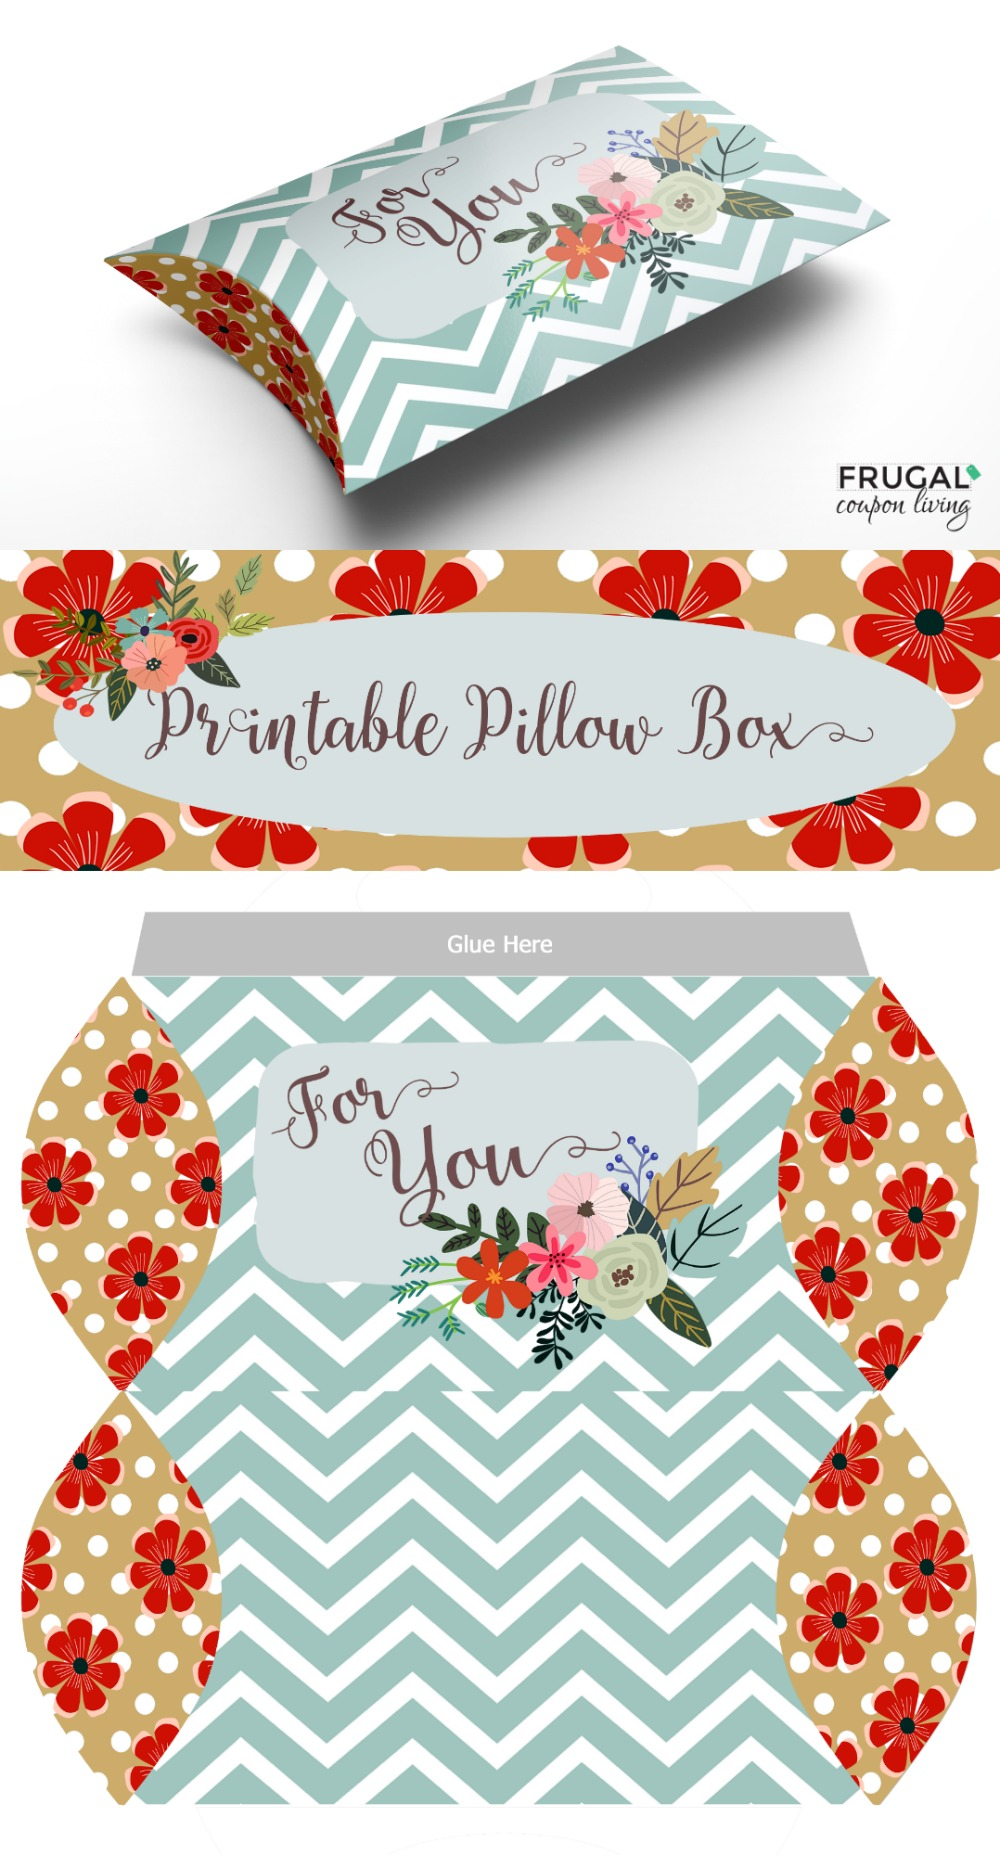 valentine-pillow-box-printable-collage-frugal-coupon-living